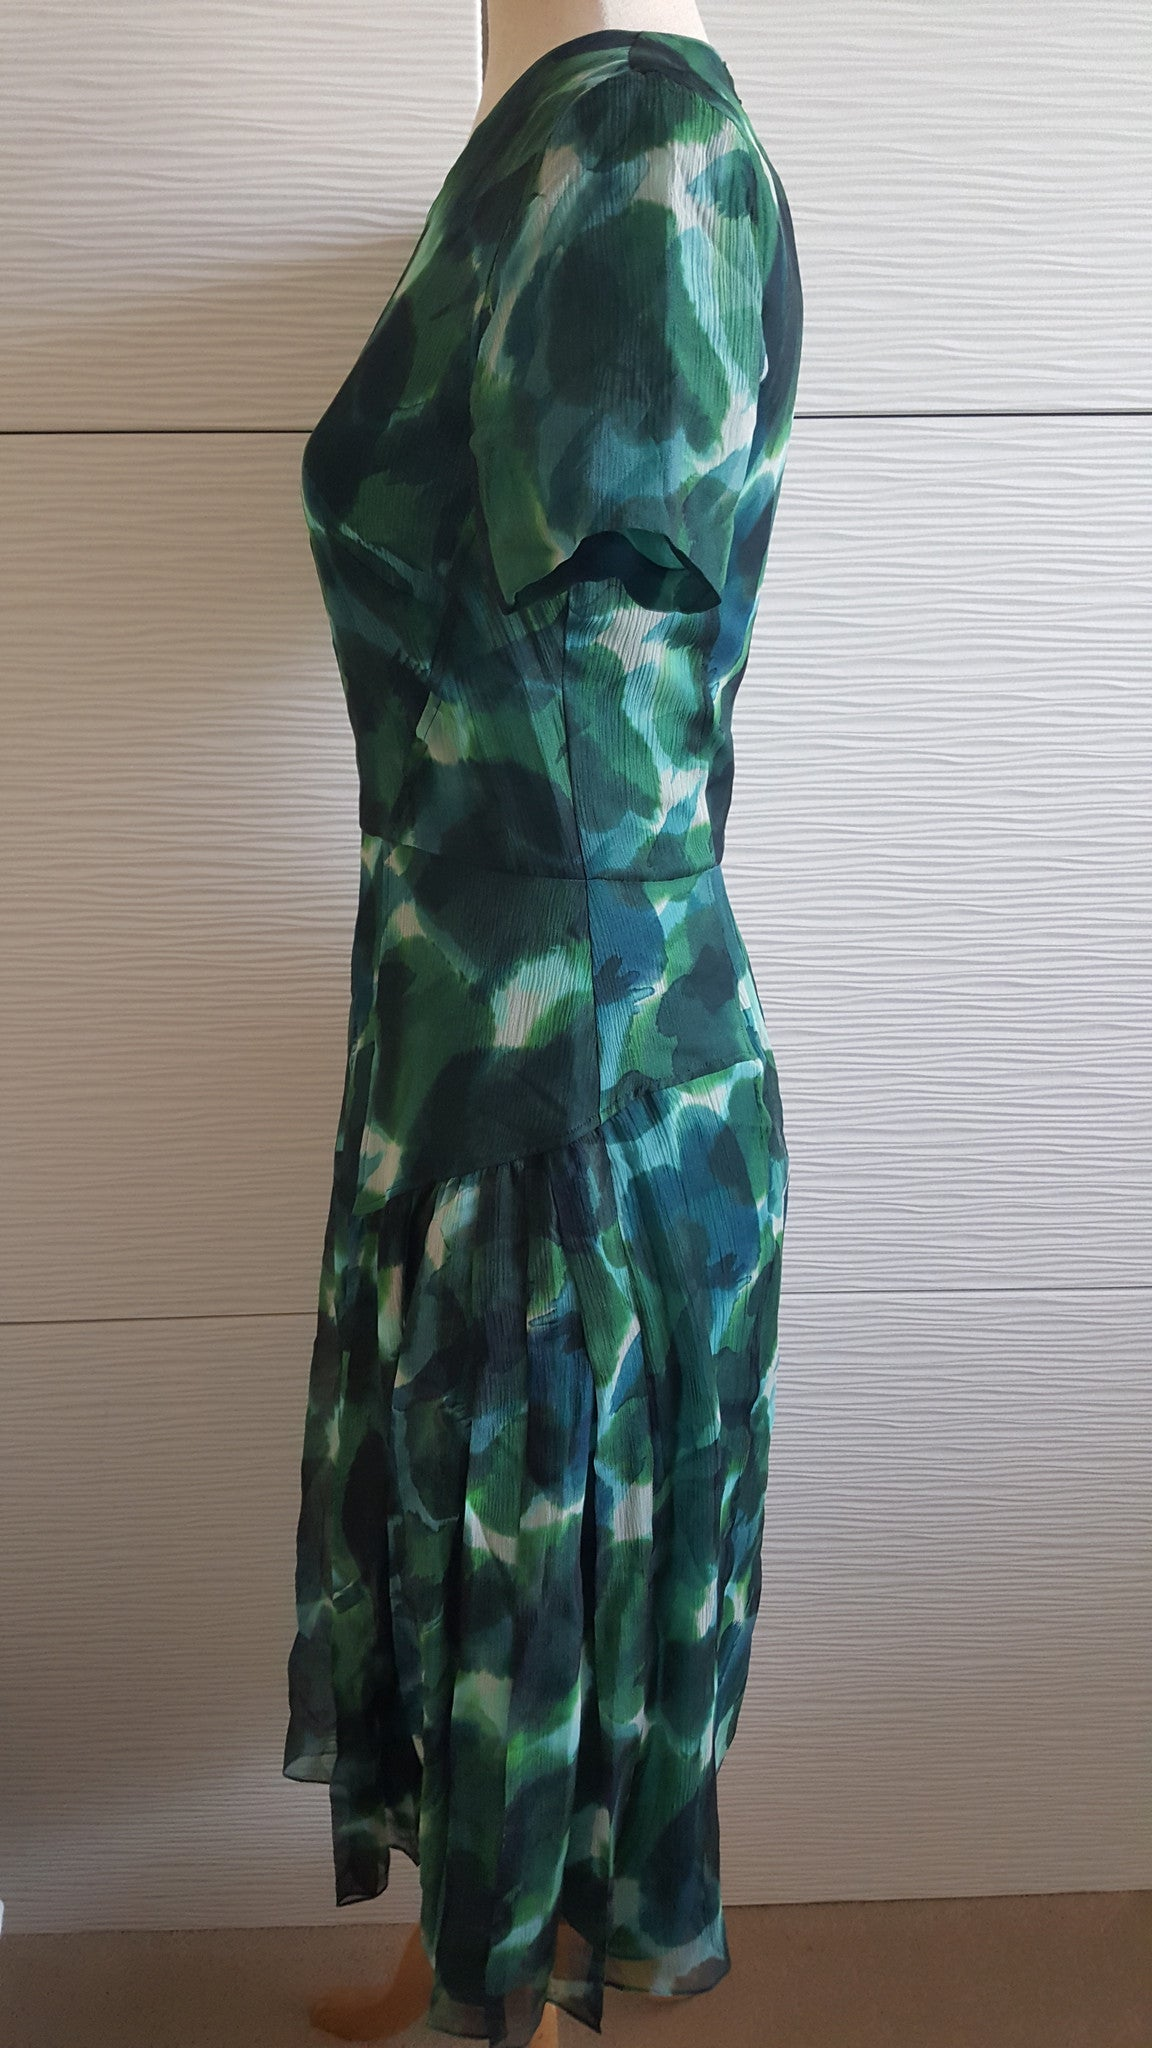 BURBERRY PRORSUM SILK FLORAL PLEAT GREEN DRESS - SIZE 42